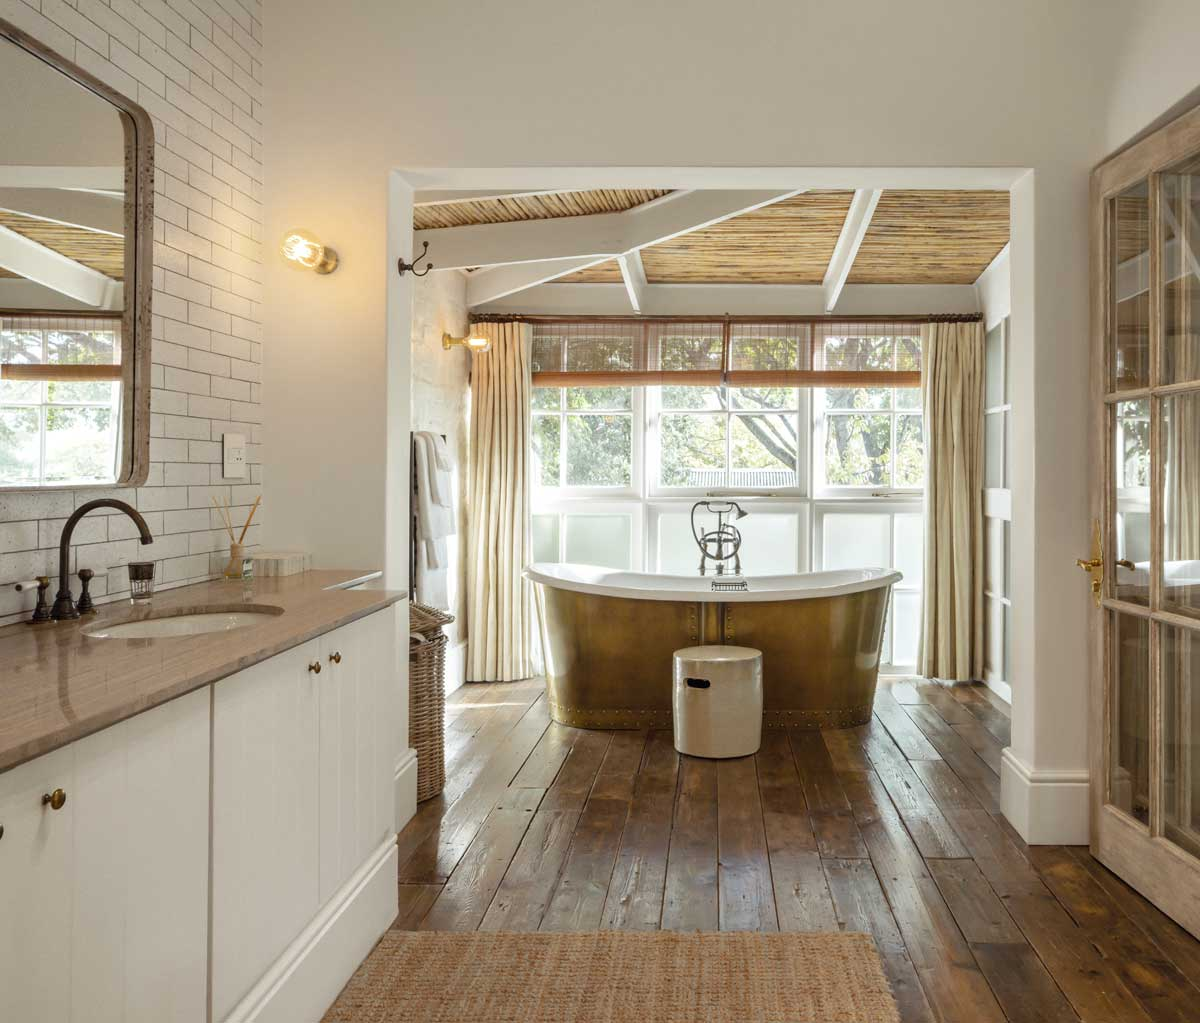 Bateau bath in an aged brass skirt with Britannia bath mixer with levers in an aged brass finish ta Akademie Street Hotel by Victorian Bathrooms